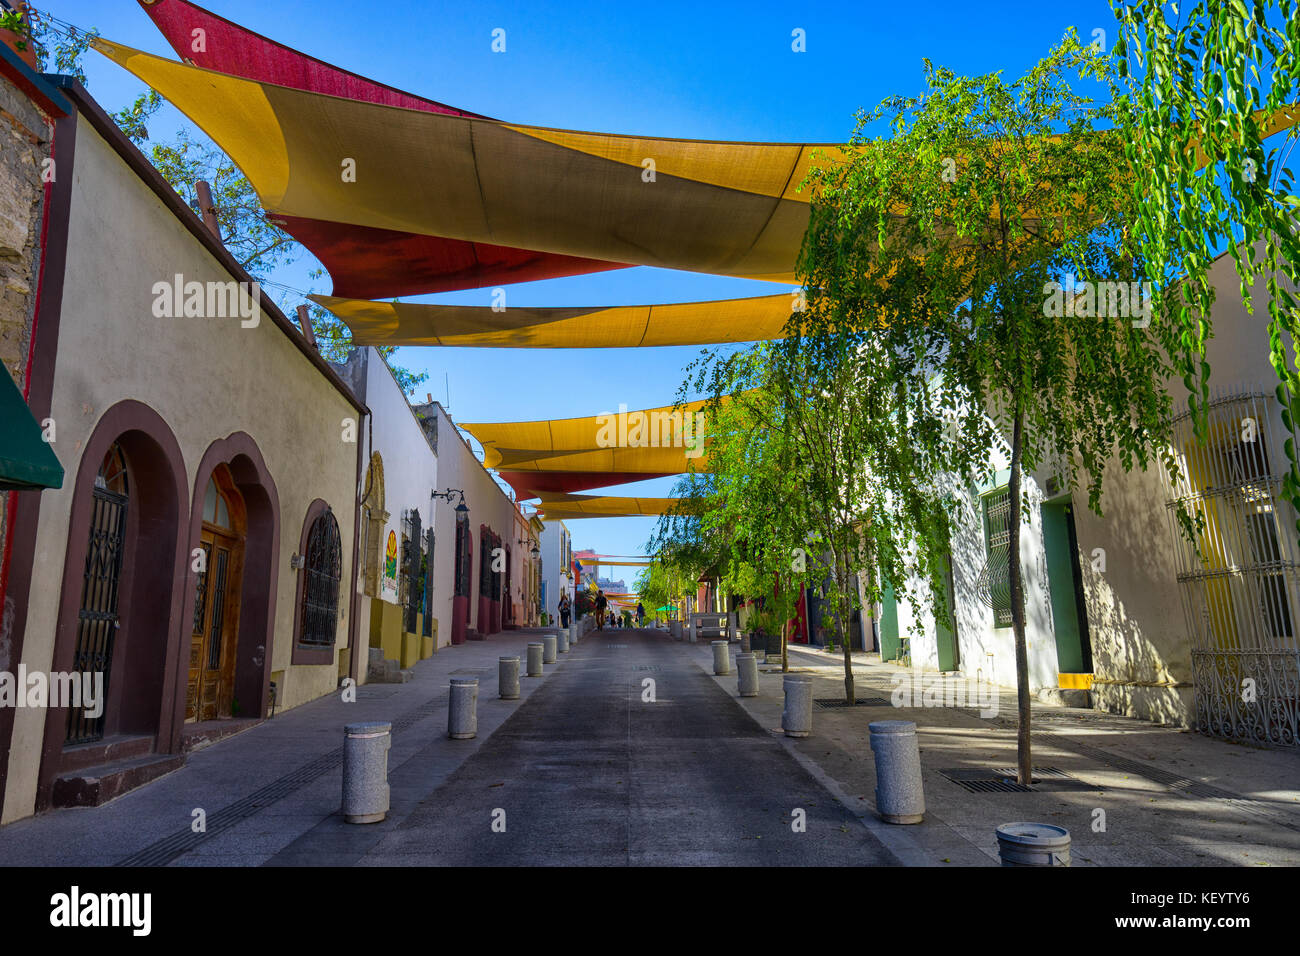 January 16, 2016 Monterrey, Mexico: shade installed over the street in the historic old town called 'Barrio - Stock Image